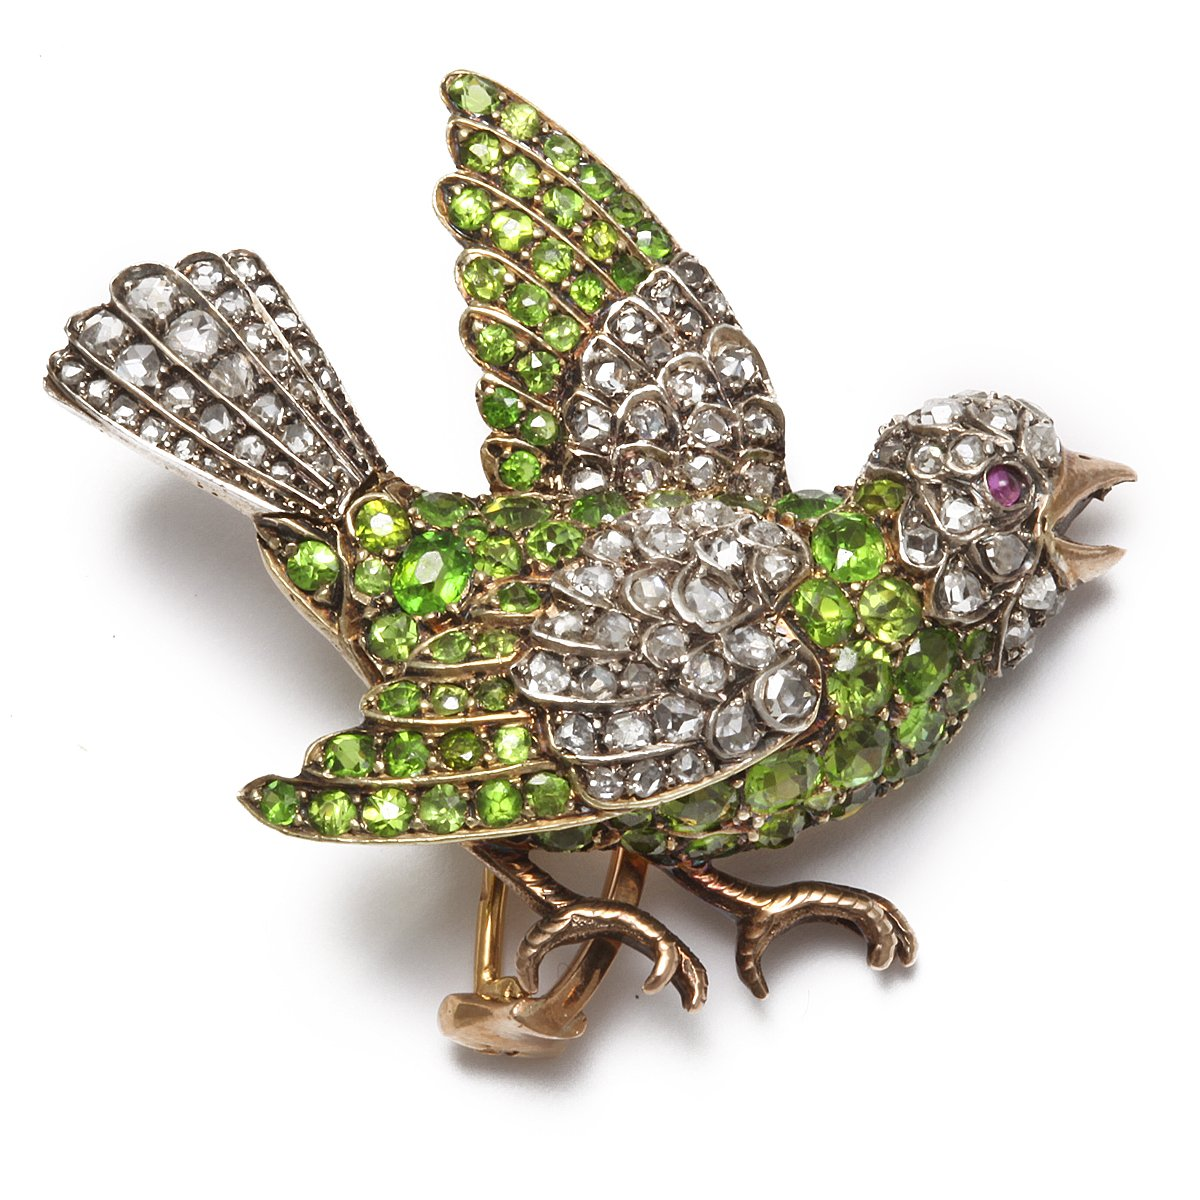 Bird brooch of demantoid garnets and diamonds, with a ruby eye, mounted in silver and gold.